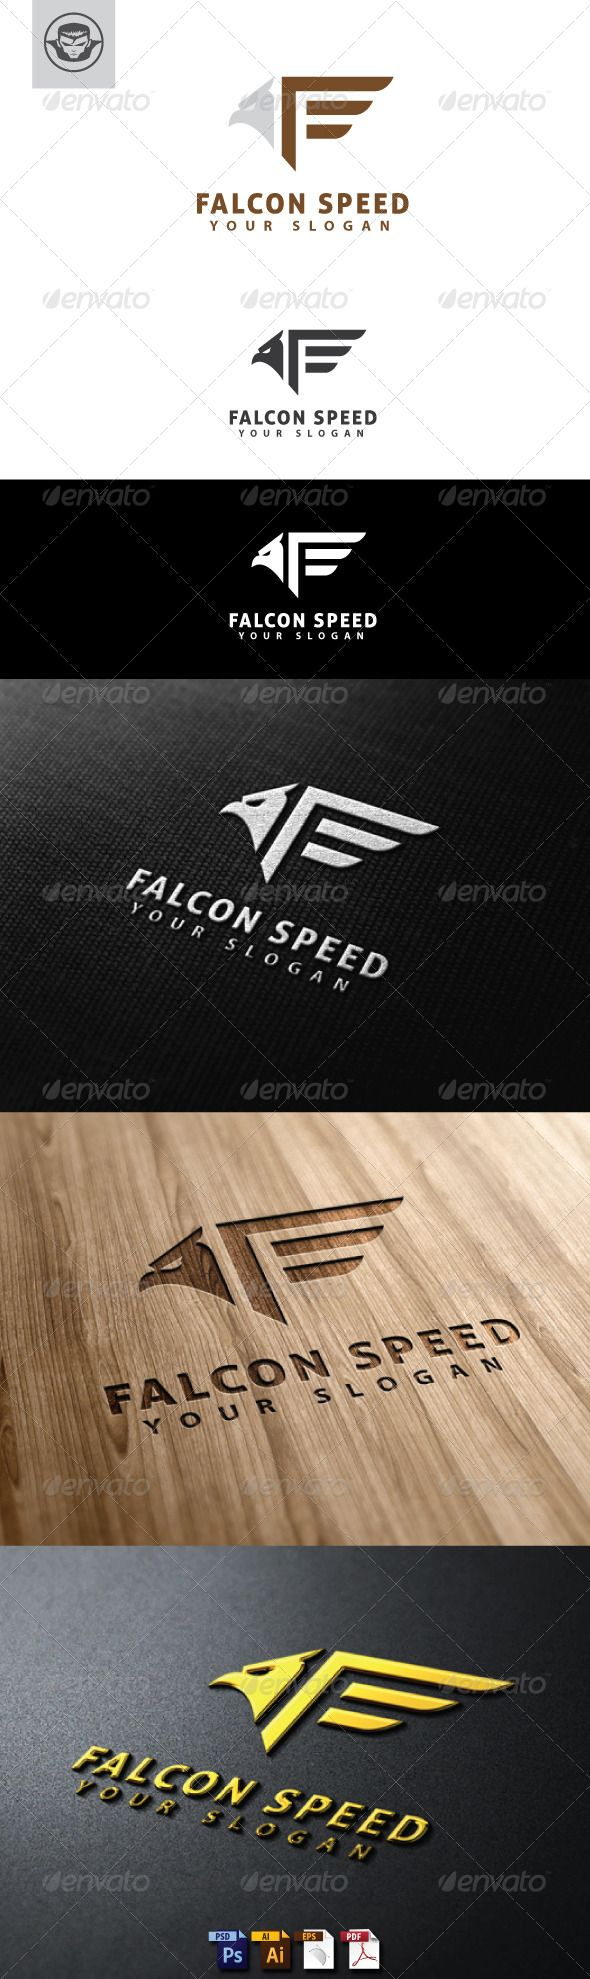 Falcon Speed  Logo Design Template Vector #logotype Download it here: http://graphicriver.net/item/falcon-speed-logo-template/4748436?s_rank=502?ref=nexion